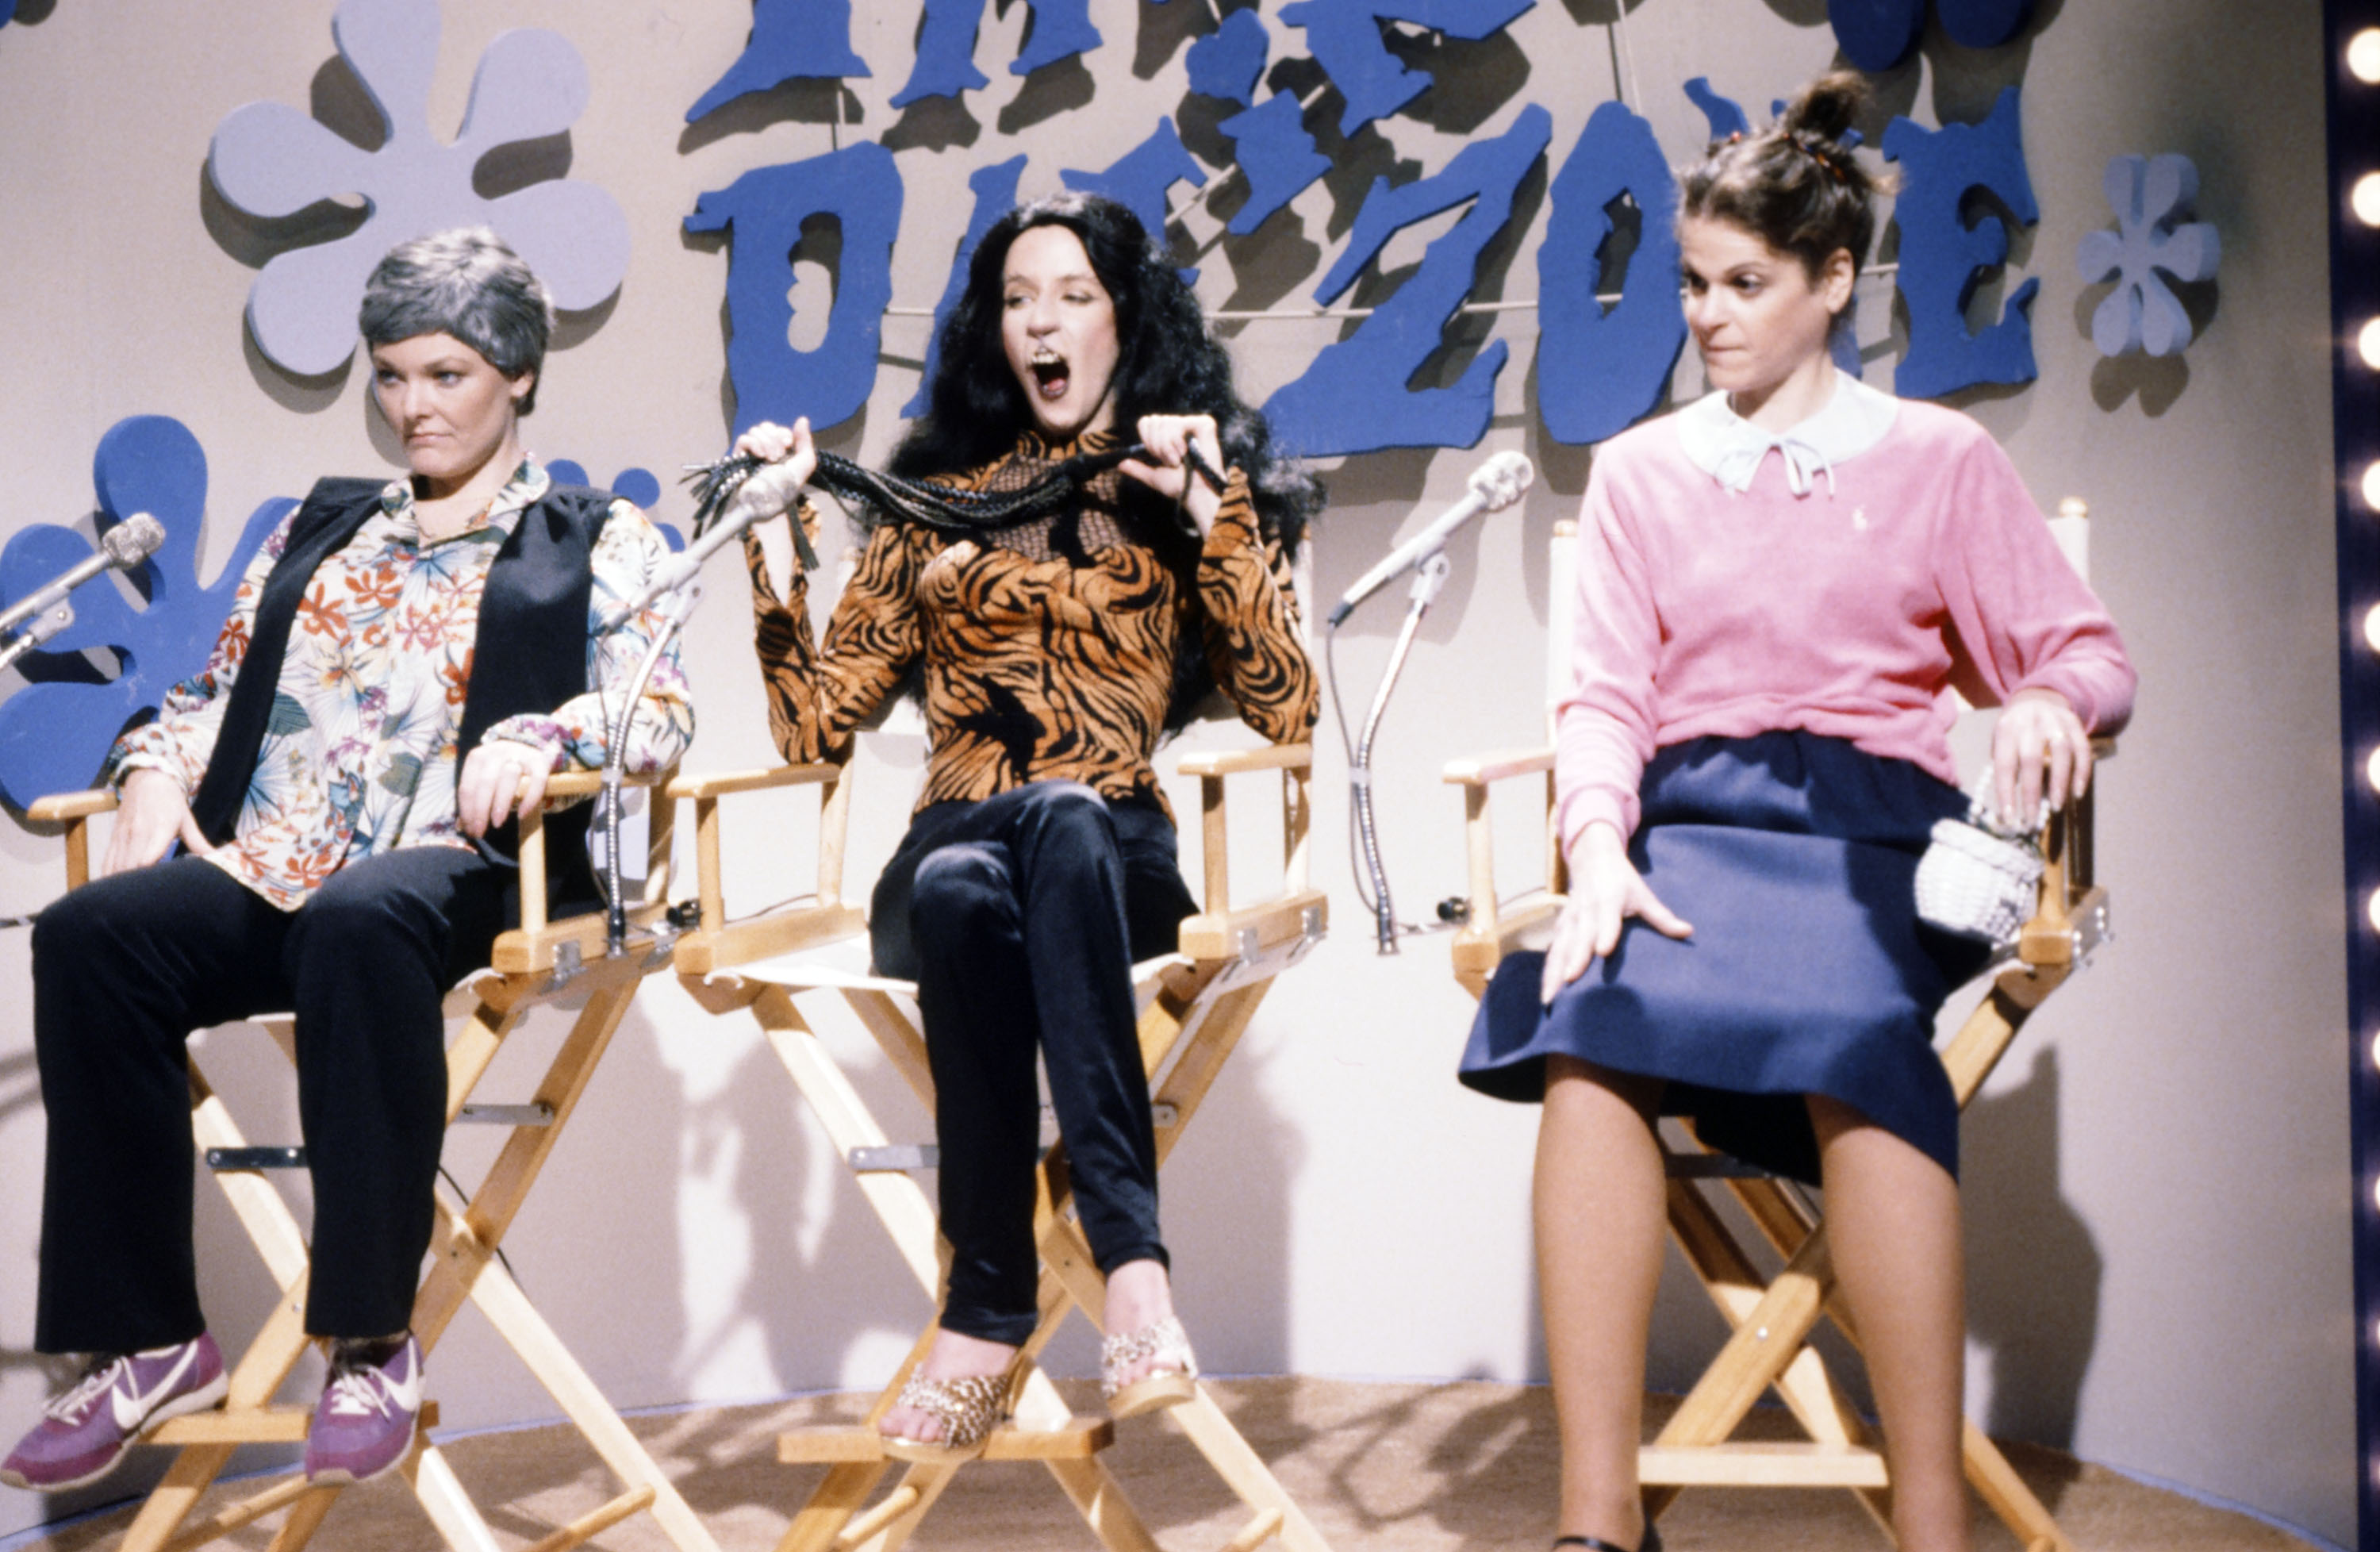 Jane Curtin with Laraine Newman and Gilda Radner Getty Images